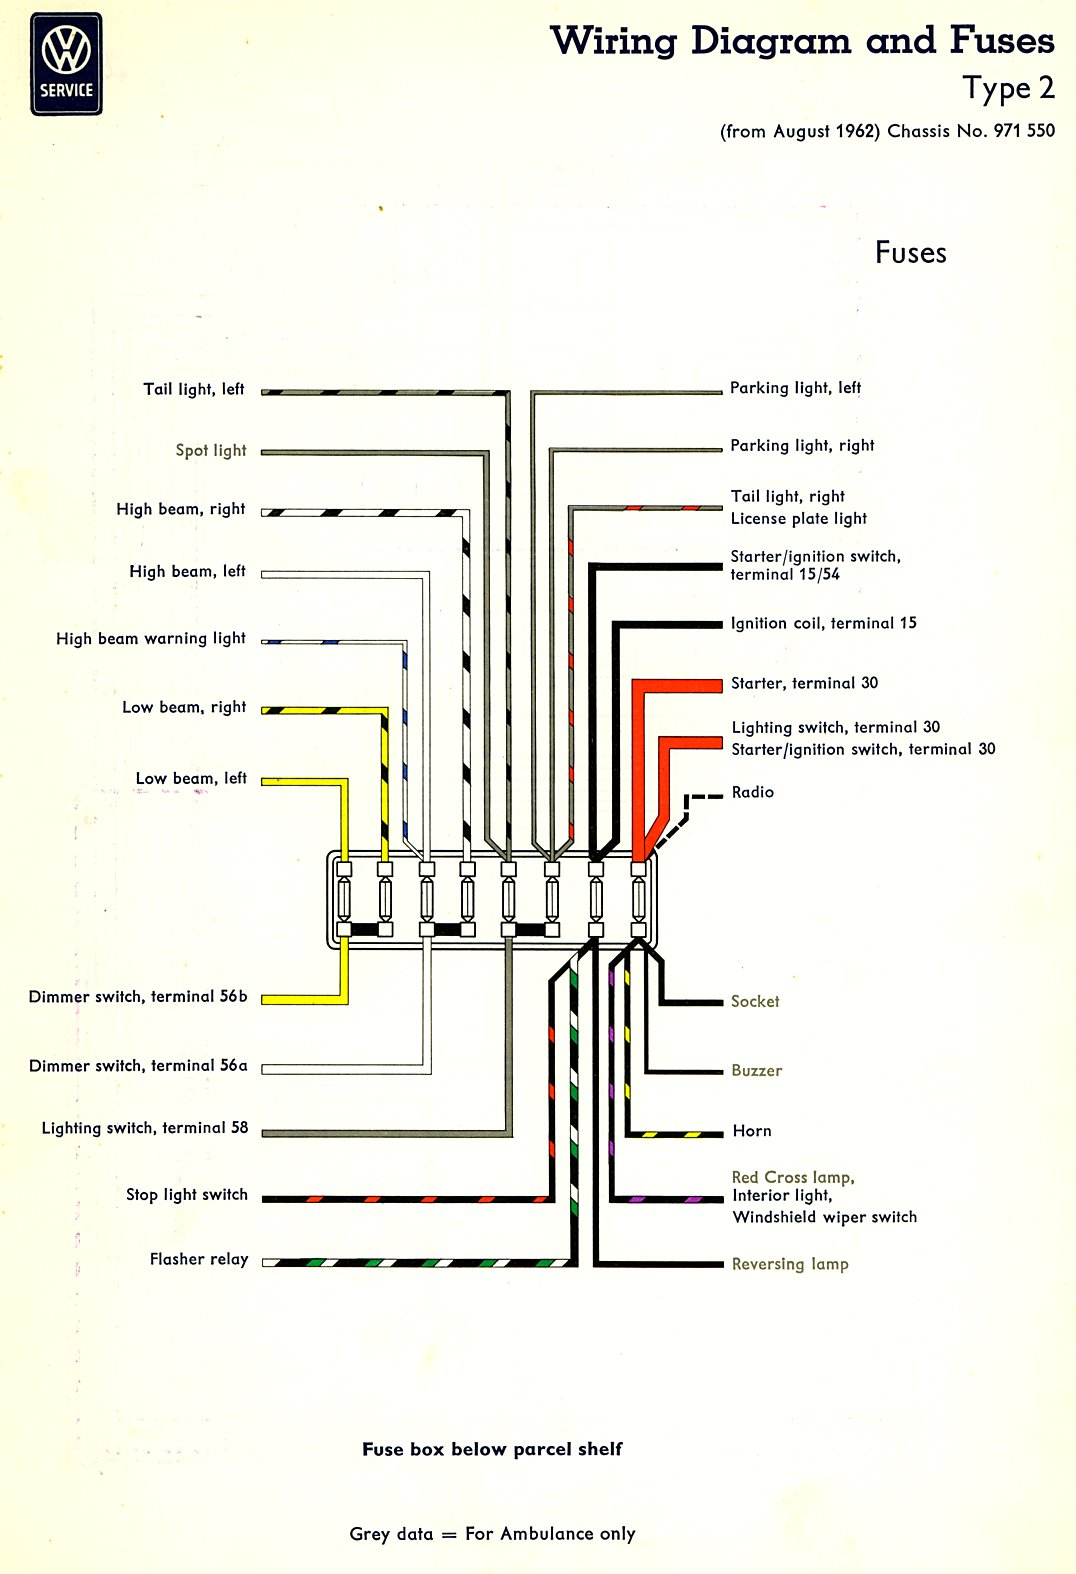 bus_63_fuses thesamba com type 2 wiring diagrams 1979 bronco fuse box diagram at pacquiaovsvargaslive.co